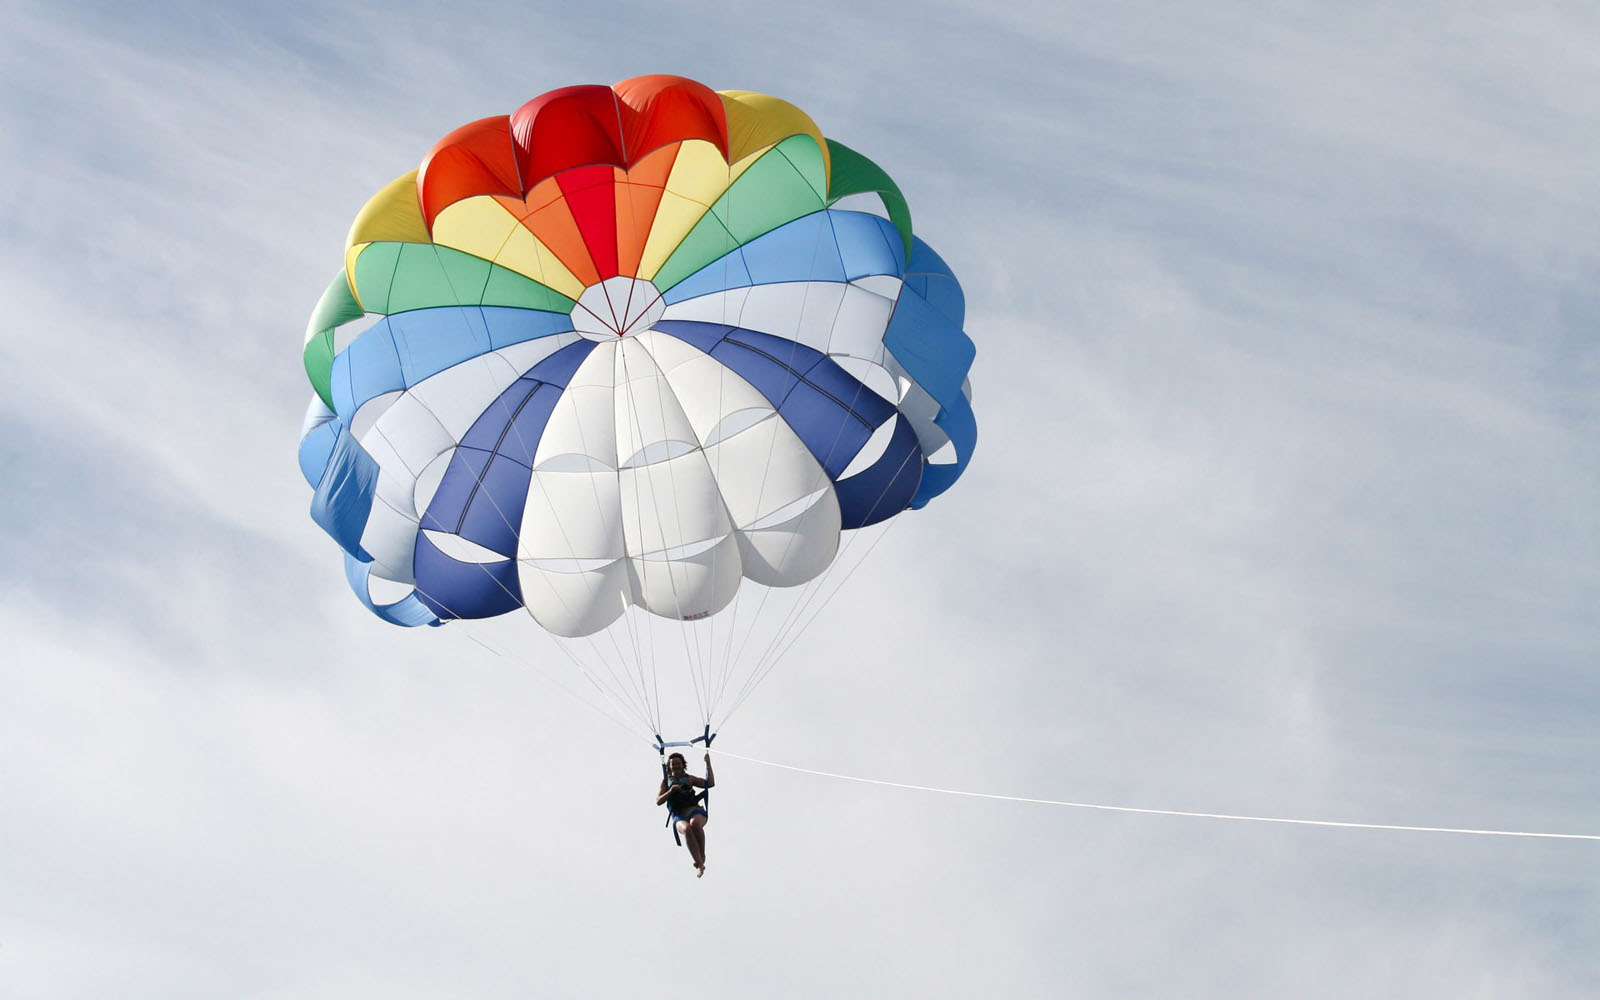 Wallpapers parachuting wallpapers - Wallpaper photos ...